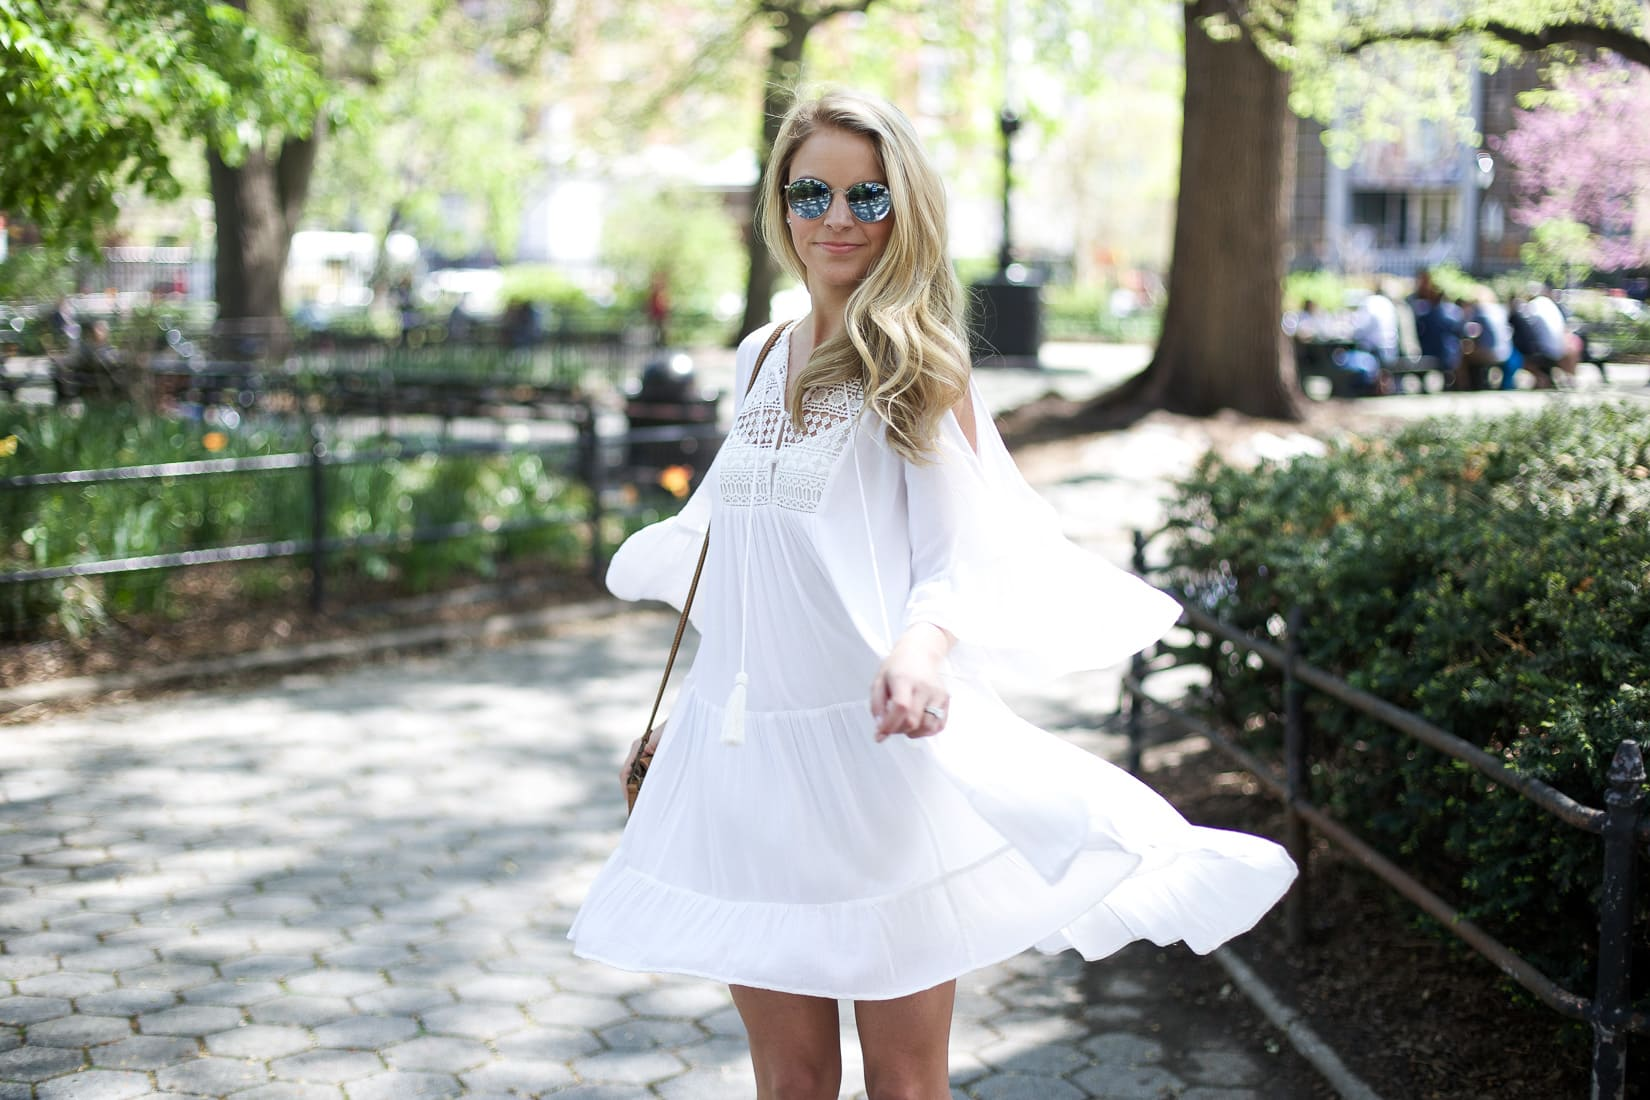 bride-to-be white dress